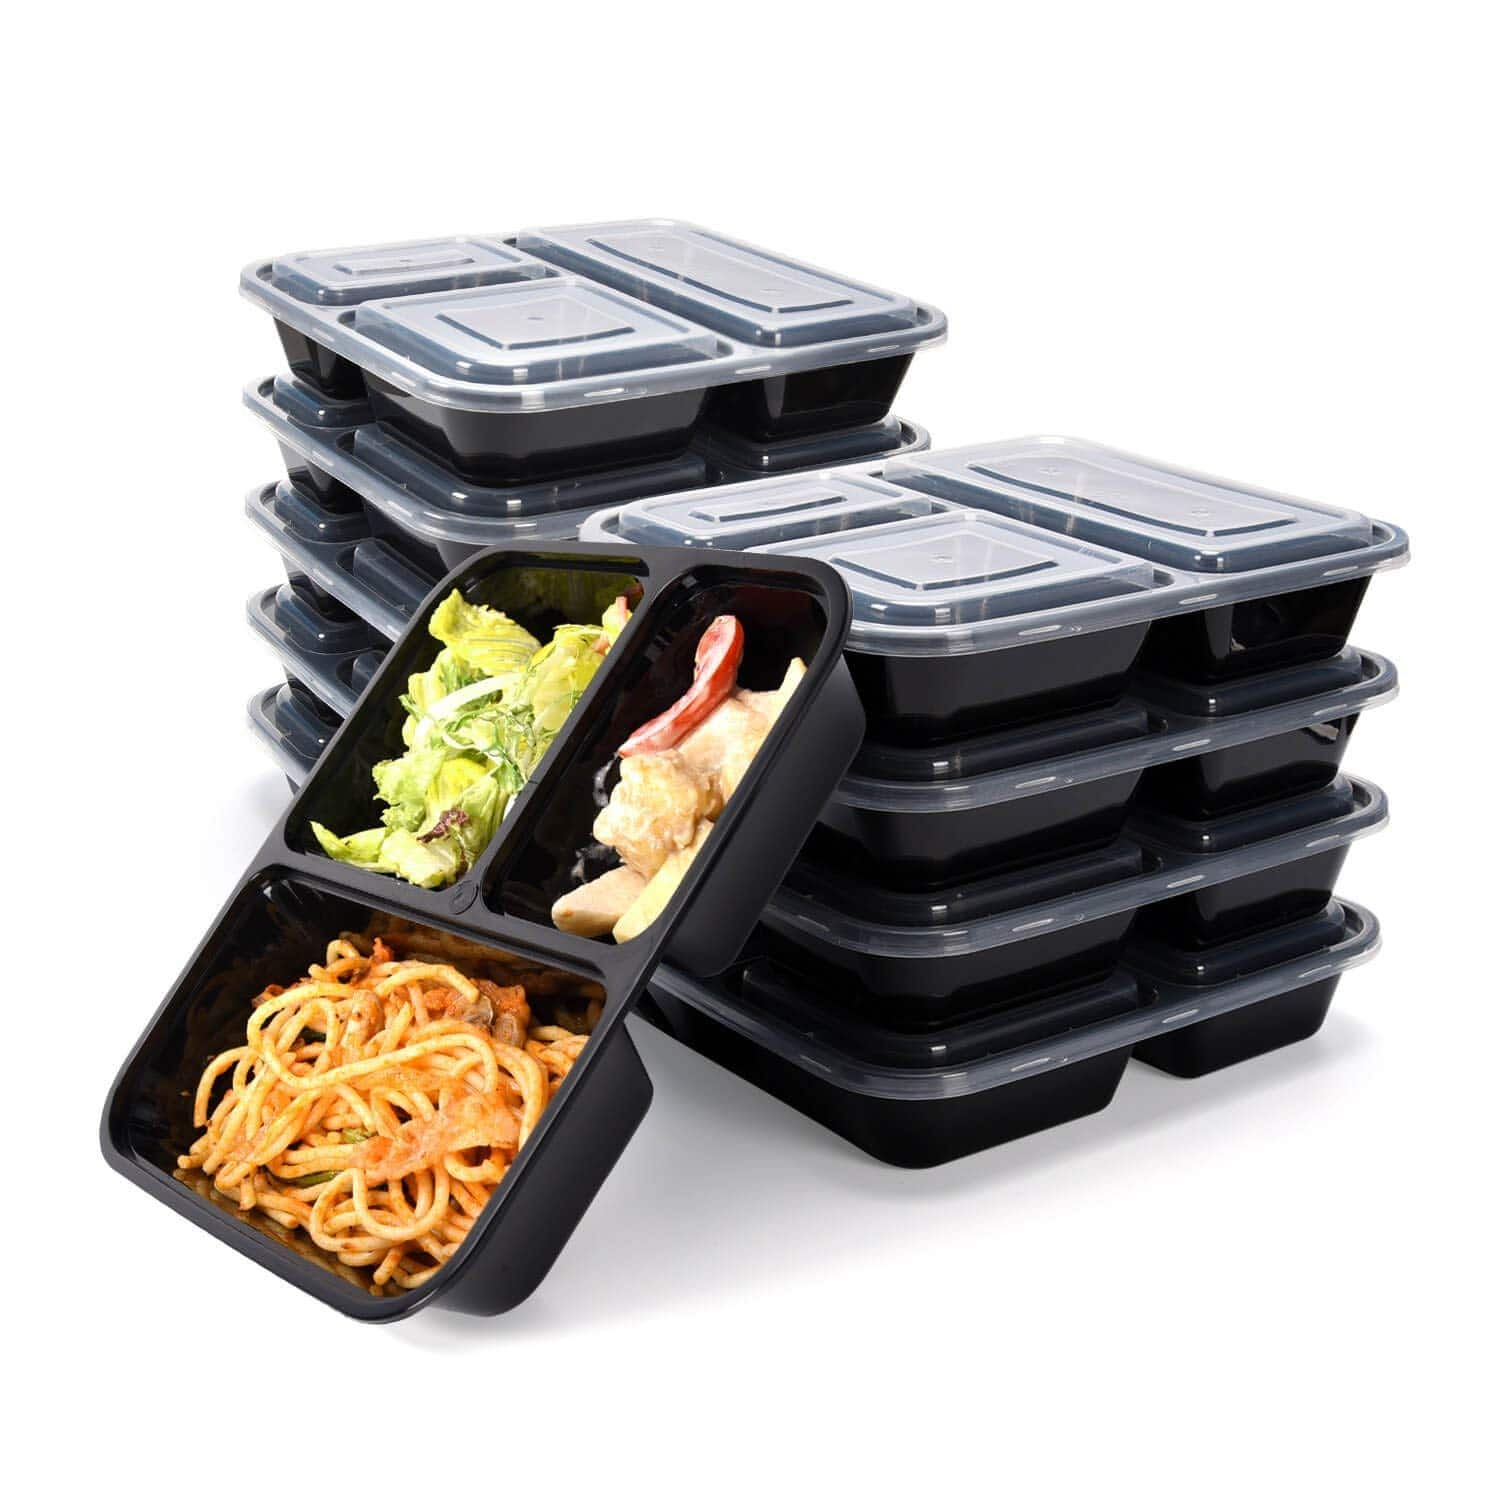 Meal Prep Containers 3 Compartments-JACKYLED 10-pack Lunch Boxes Set, $7.01